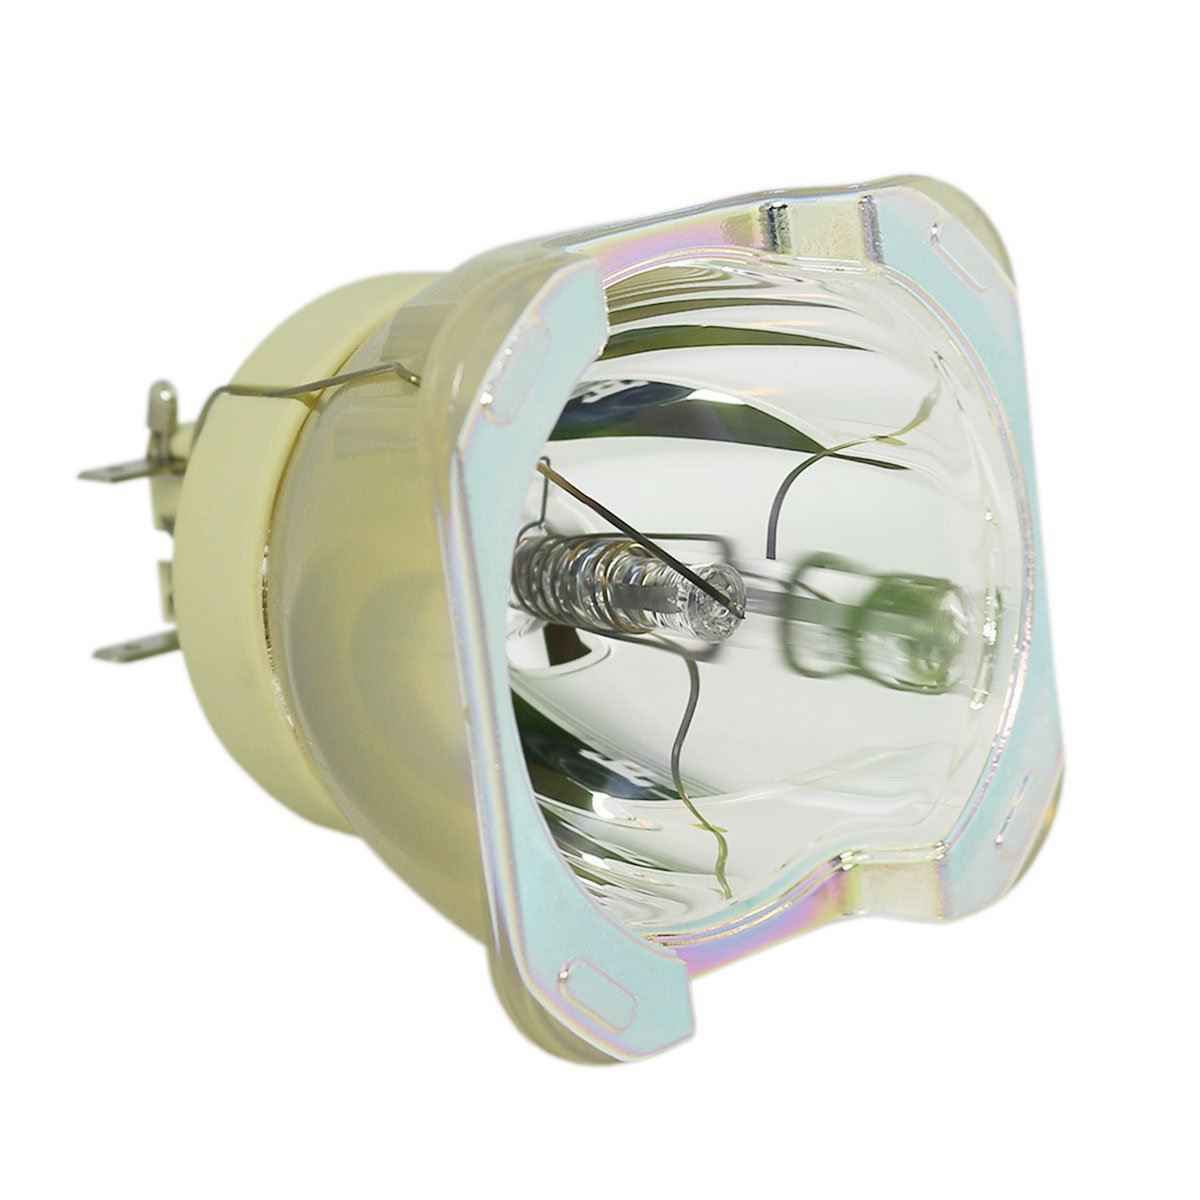 Original Ushio Projector Lamp Replacement with Housing for Barco R9832773